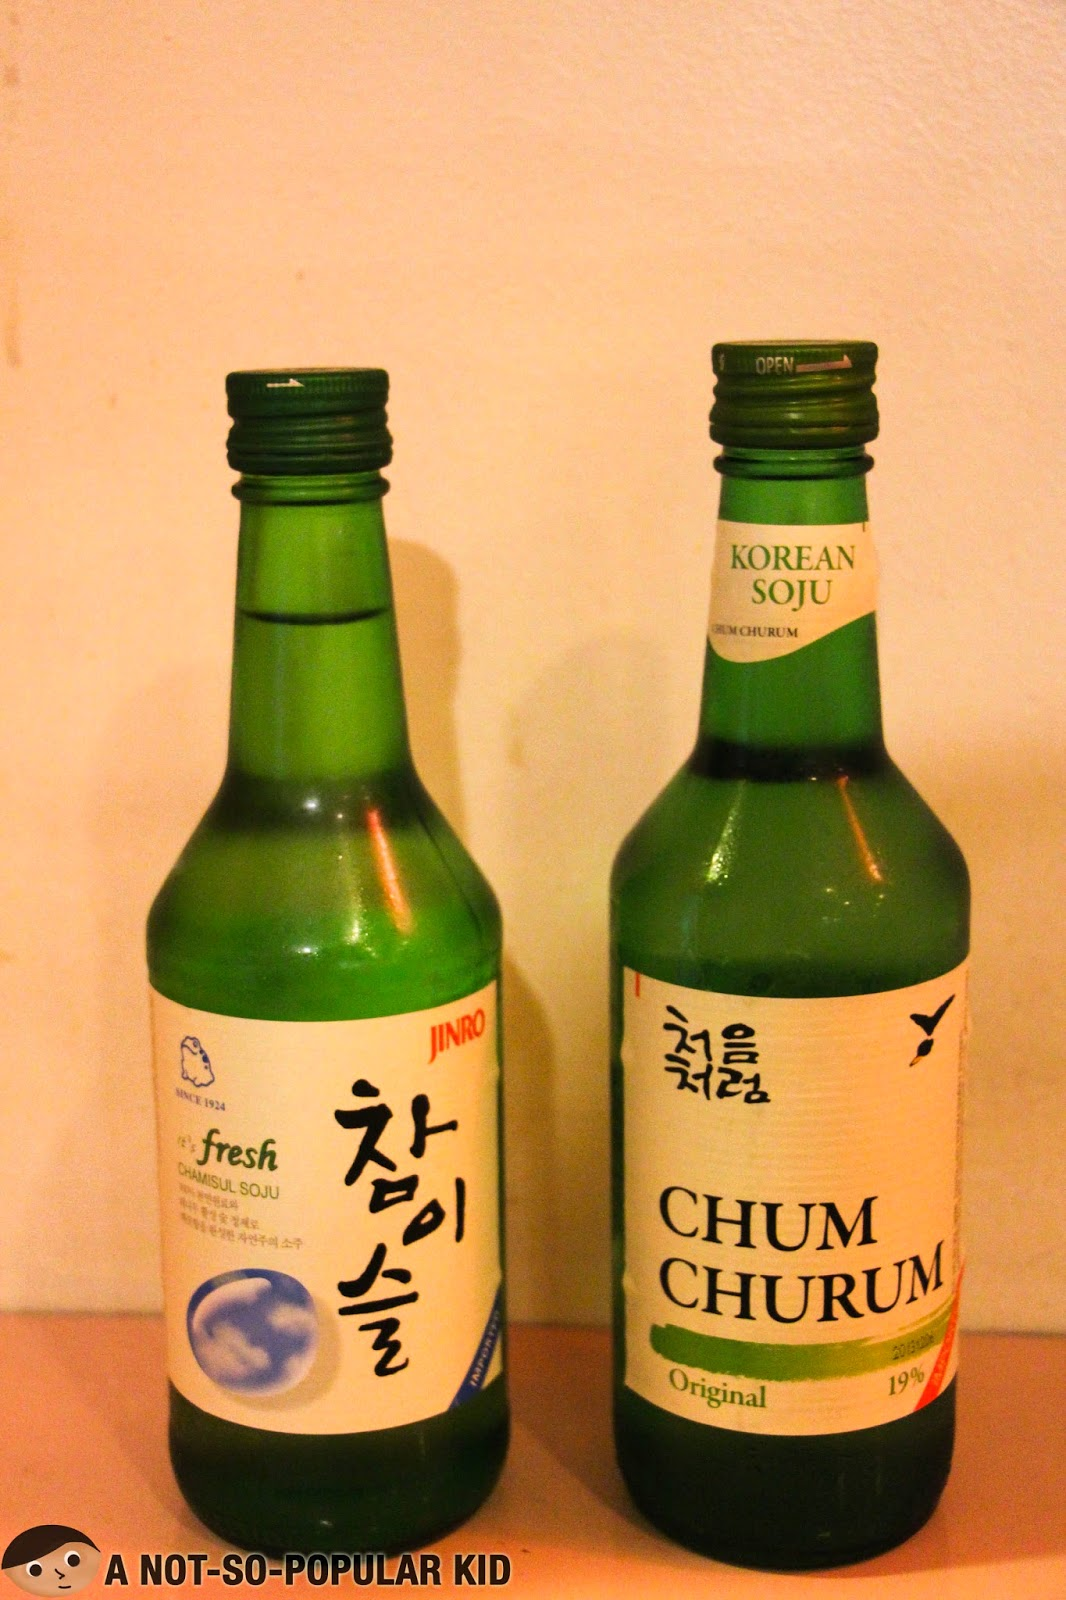 Korean Soju and Chum Churum in Genji-M